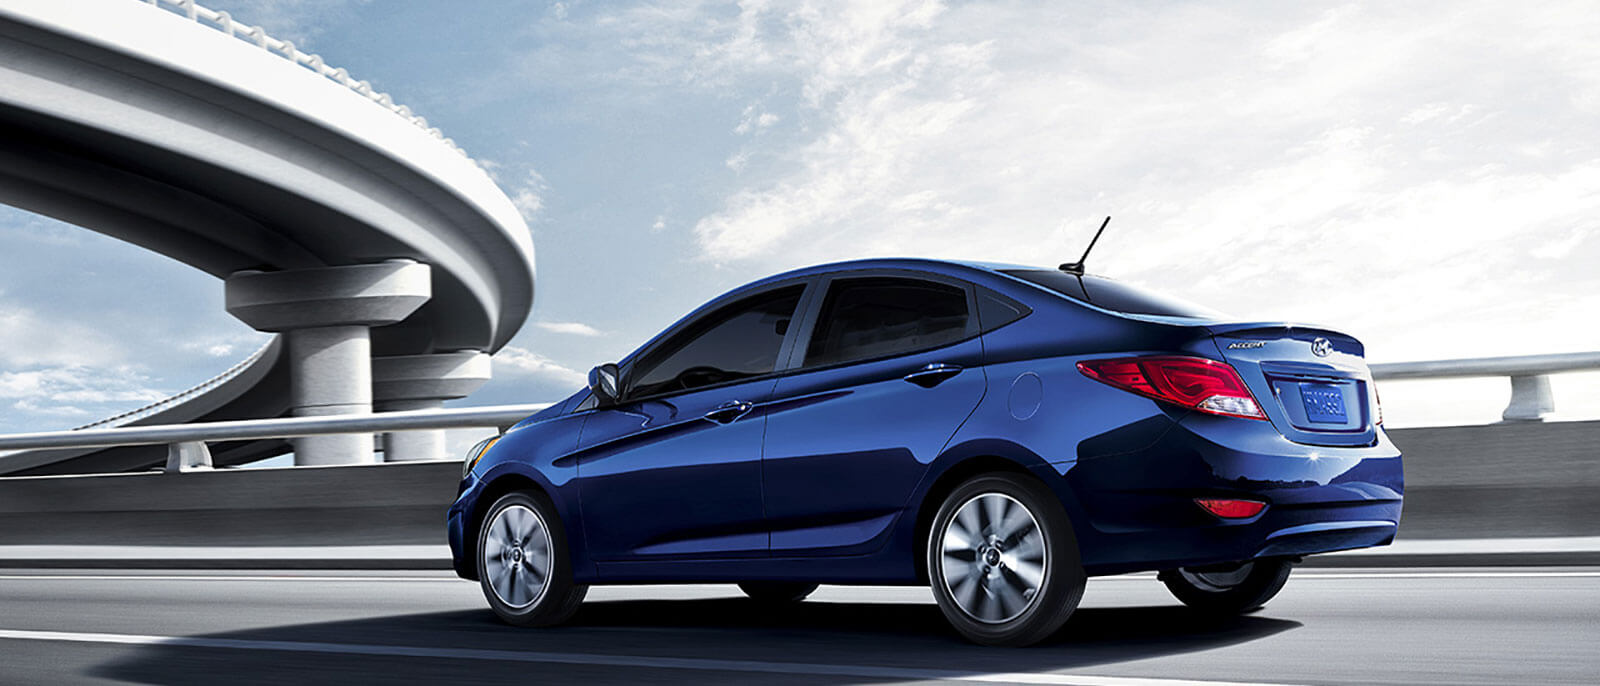 2017 Hyundai Accent in blue driving down the highway